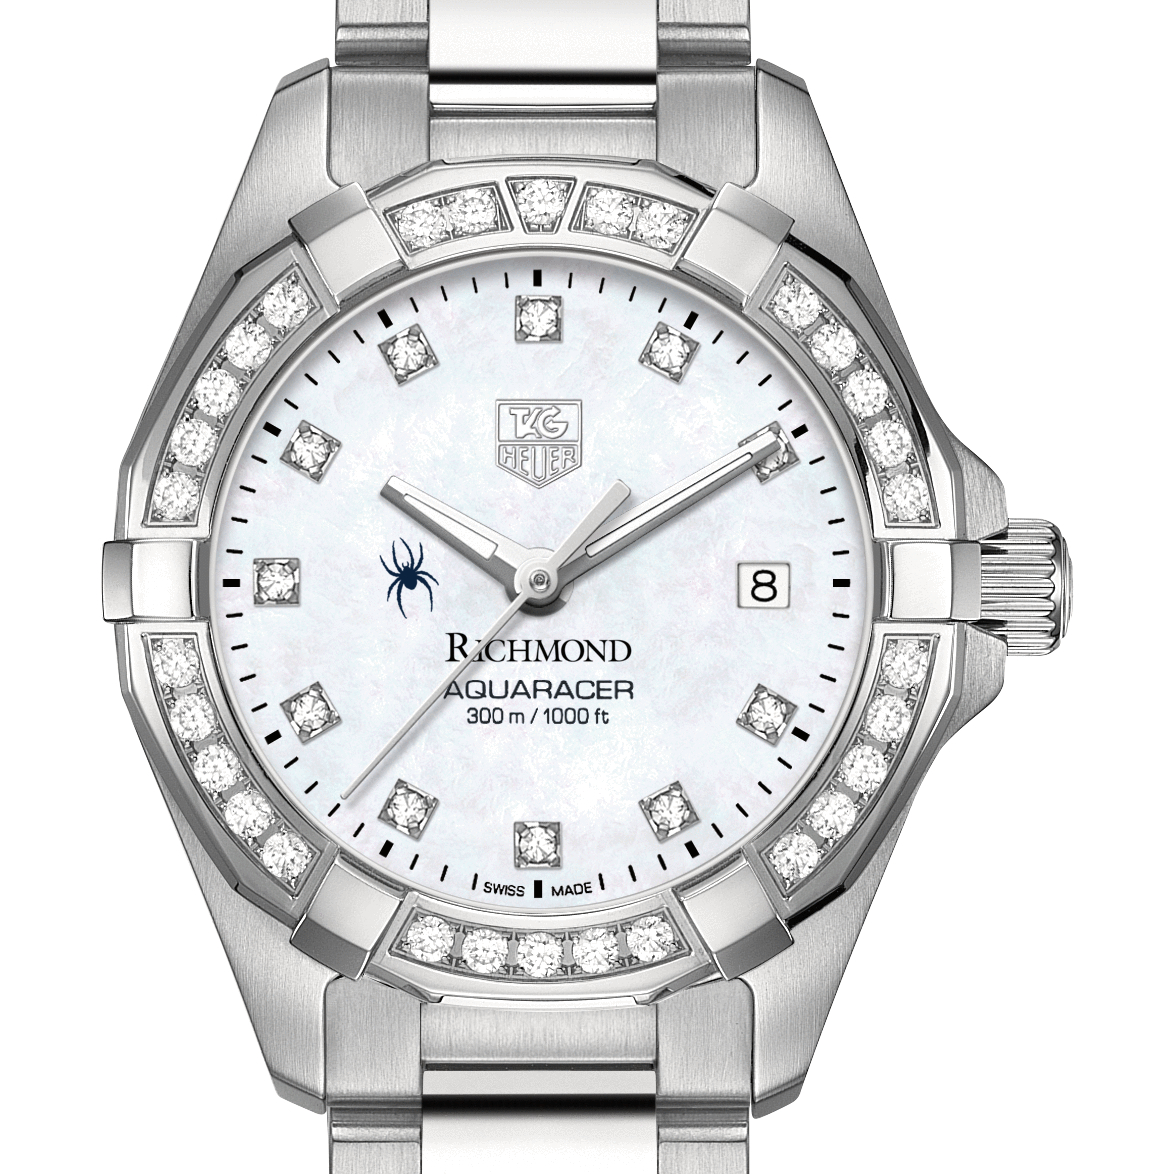 University of Richmond W's TAG Heuer Steel Aquaracer with MOP Dia Dial & Bezel - Image 1